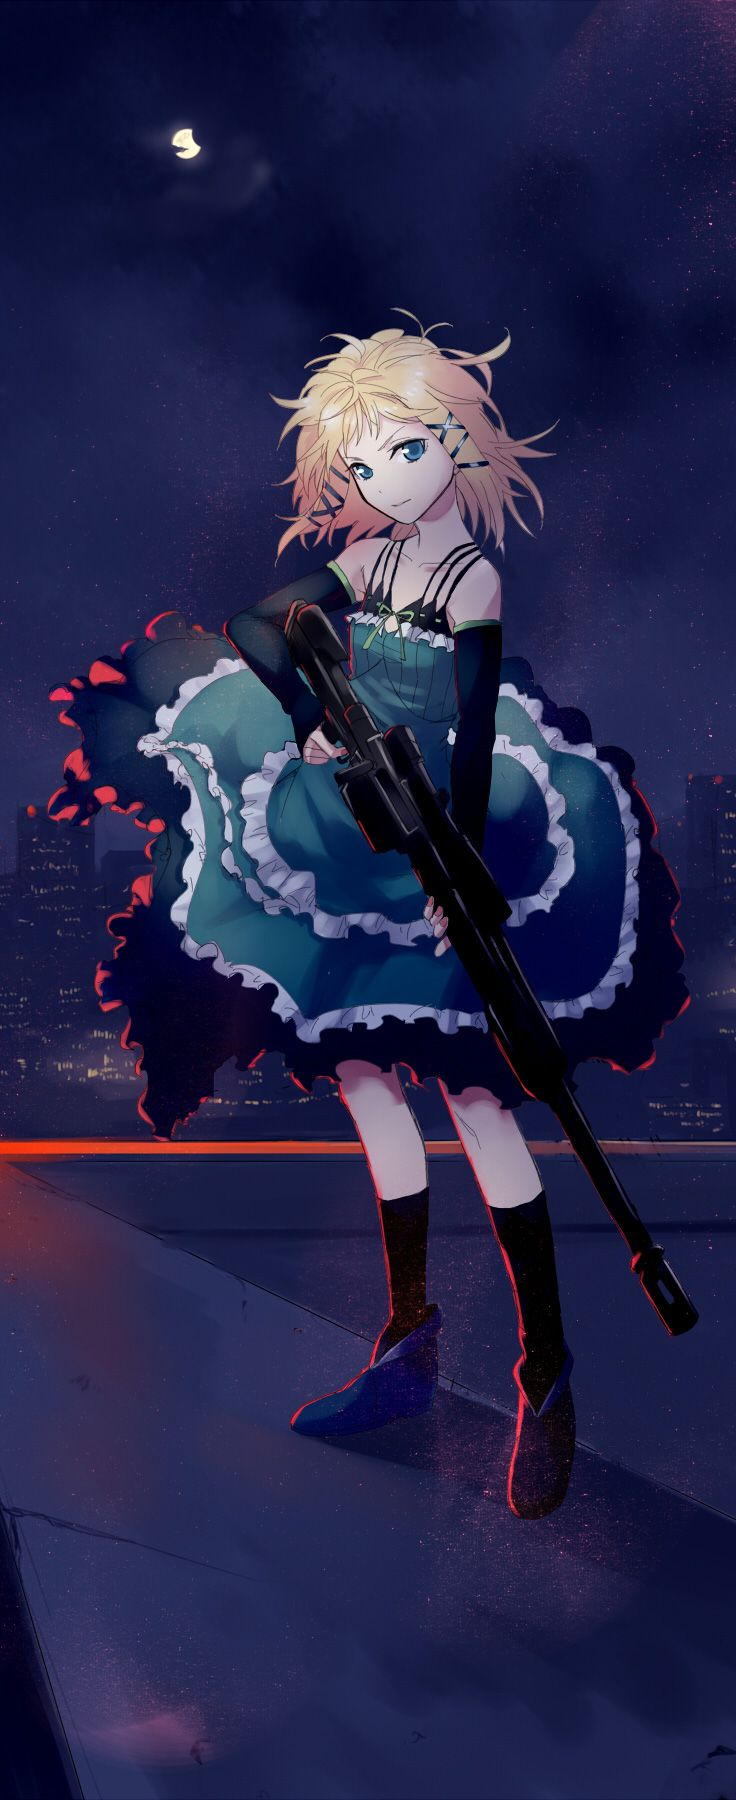 Black Bullet, Tina, by hinomoto madoka. If Ellen was an anime Character, this would be her.